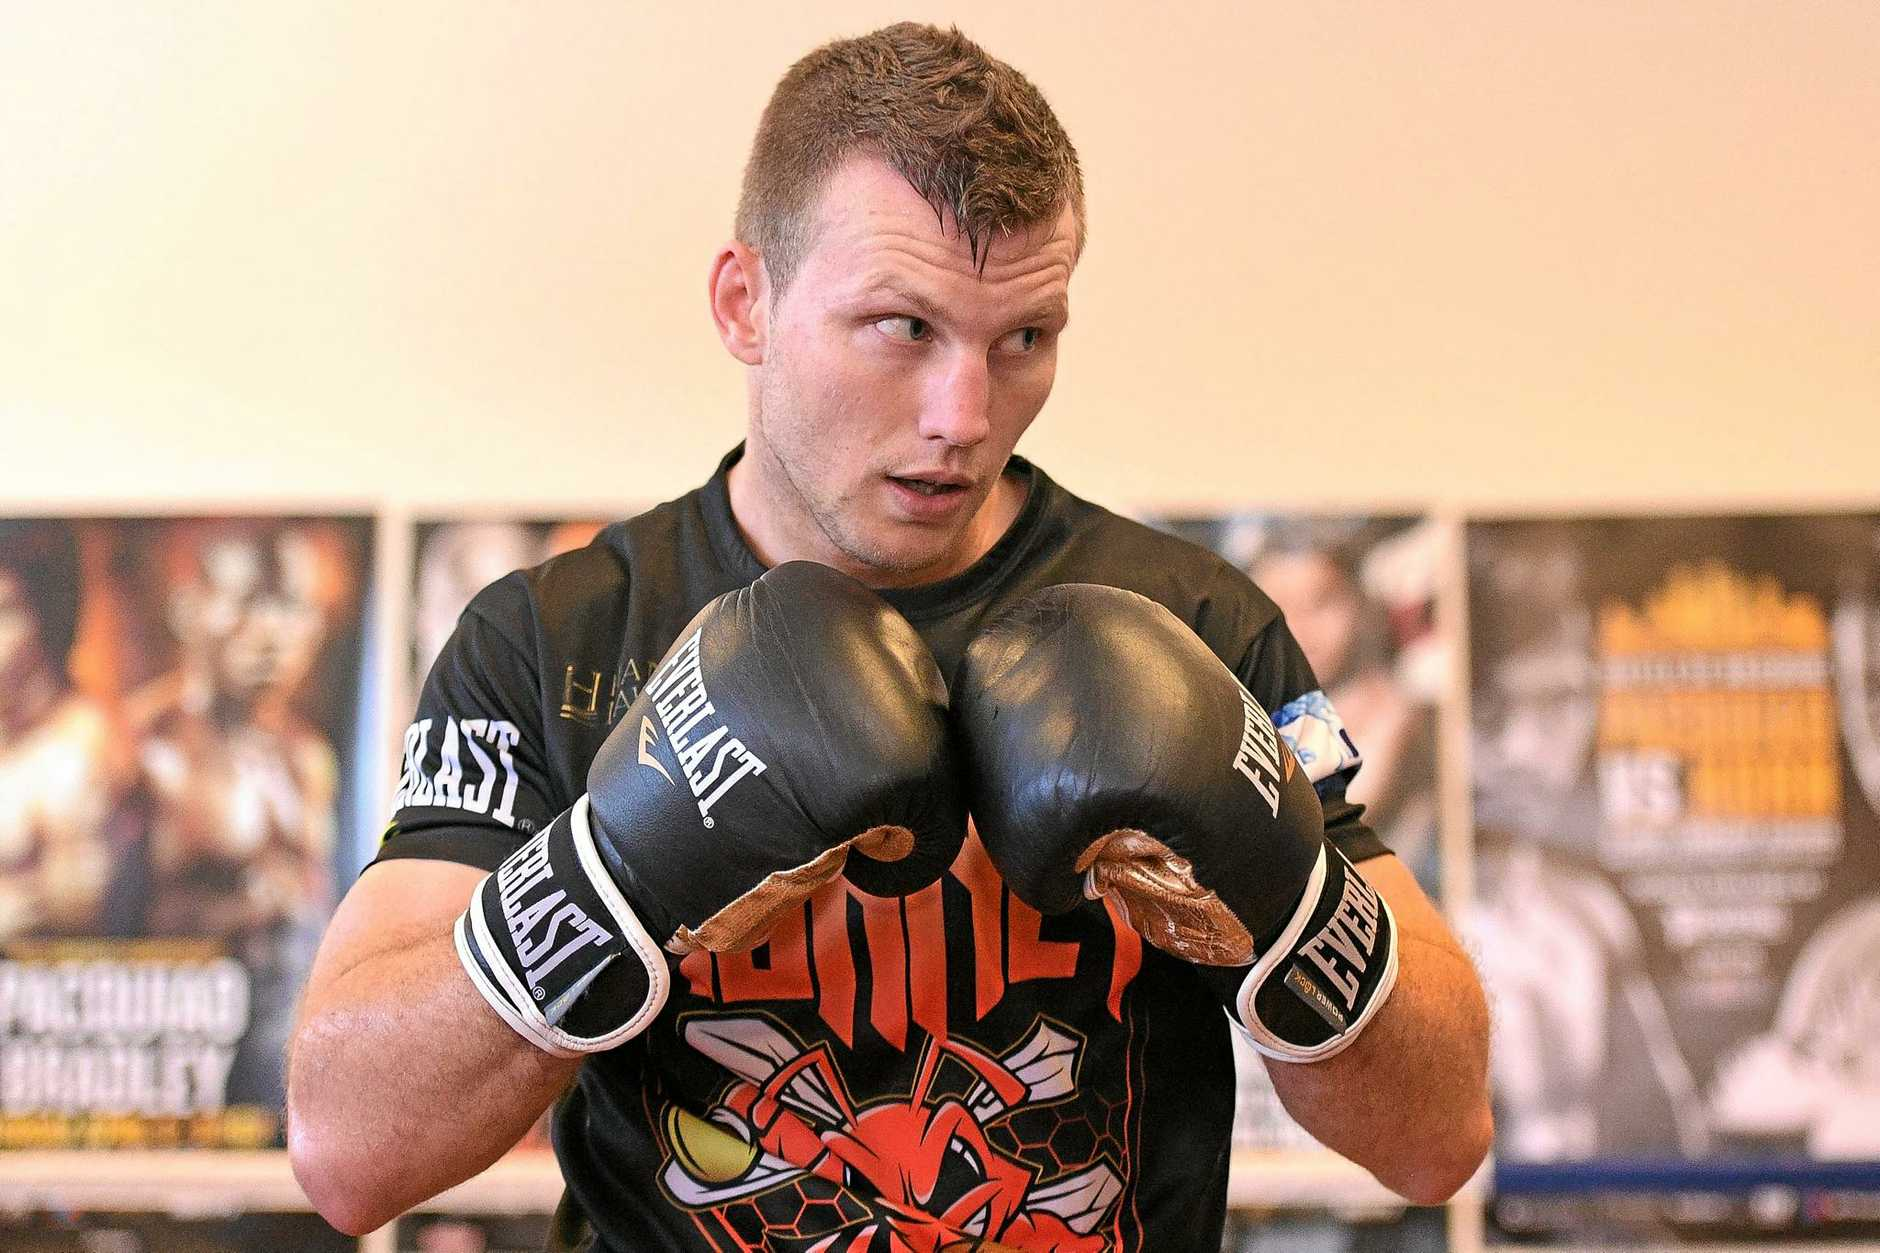 Jeff Horn during a training session in Brisbane, on Monday, June 26, 2017. Boxer Jeff Horn will fight Manny Pacqucao in the